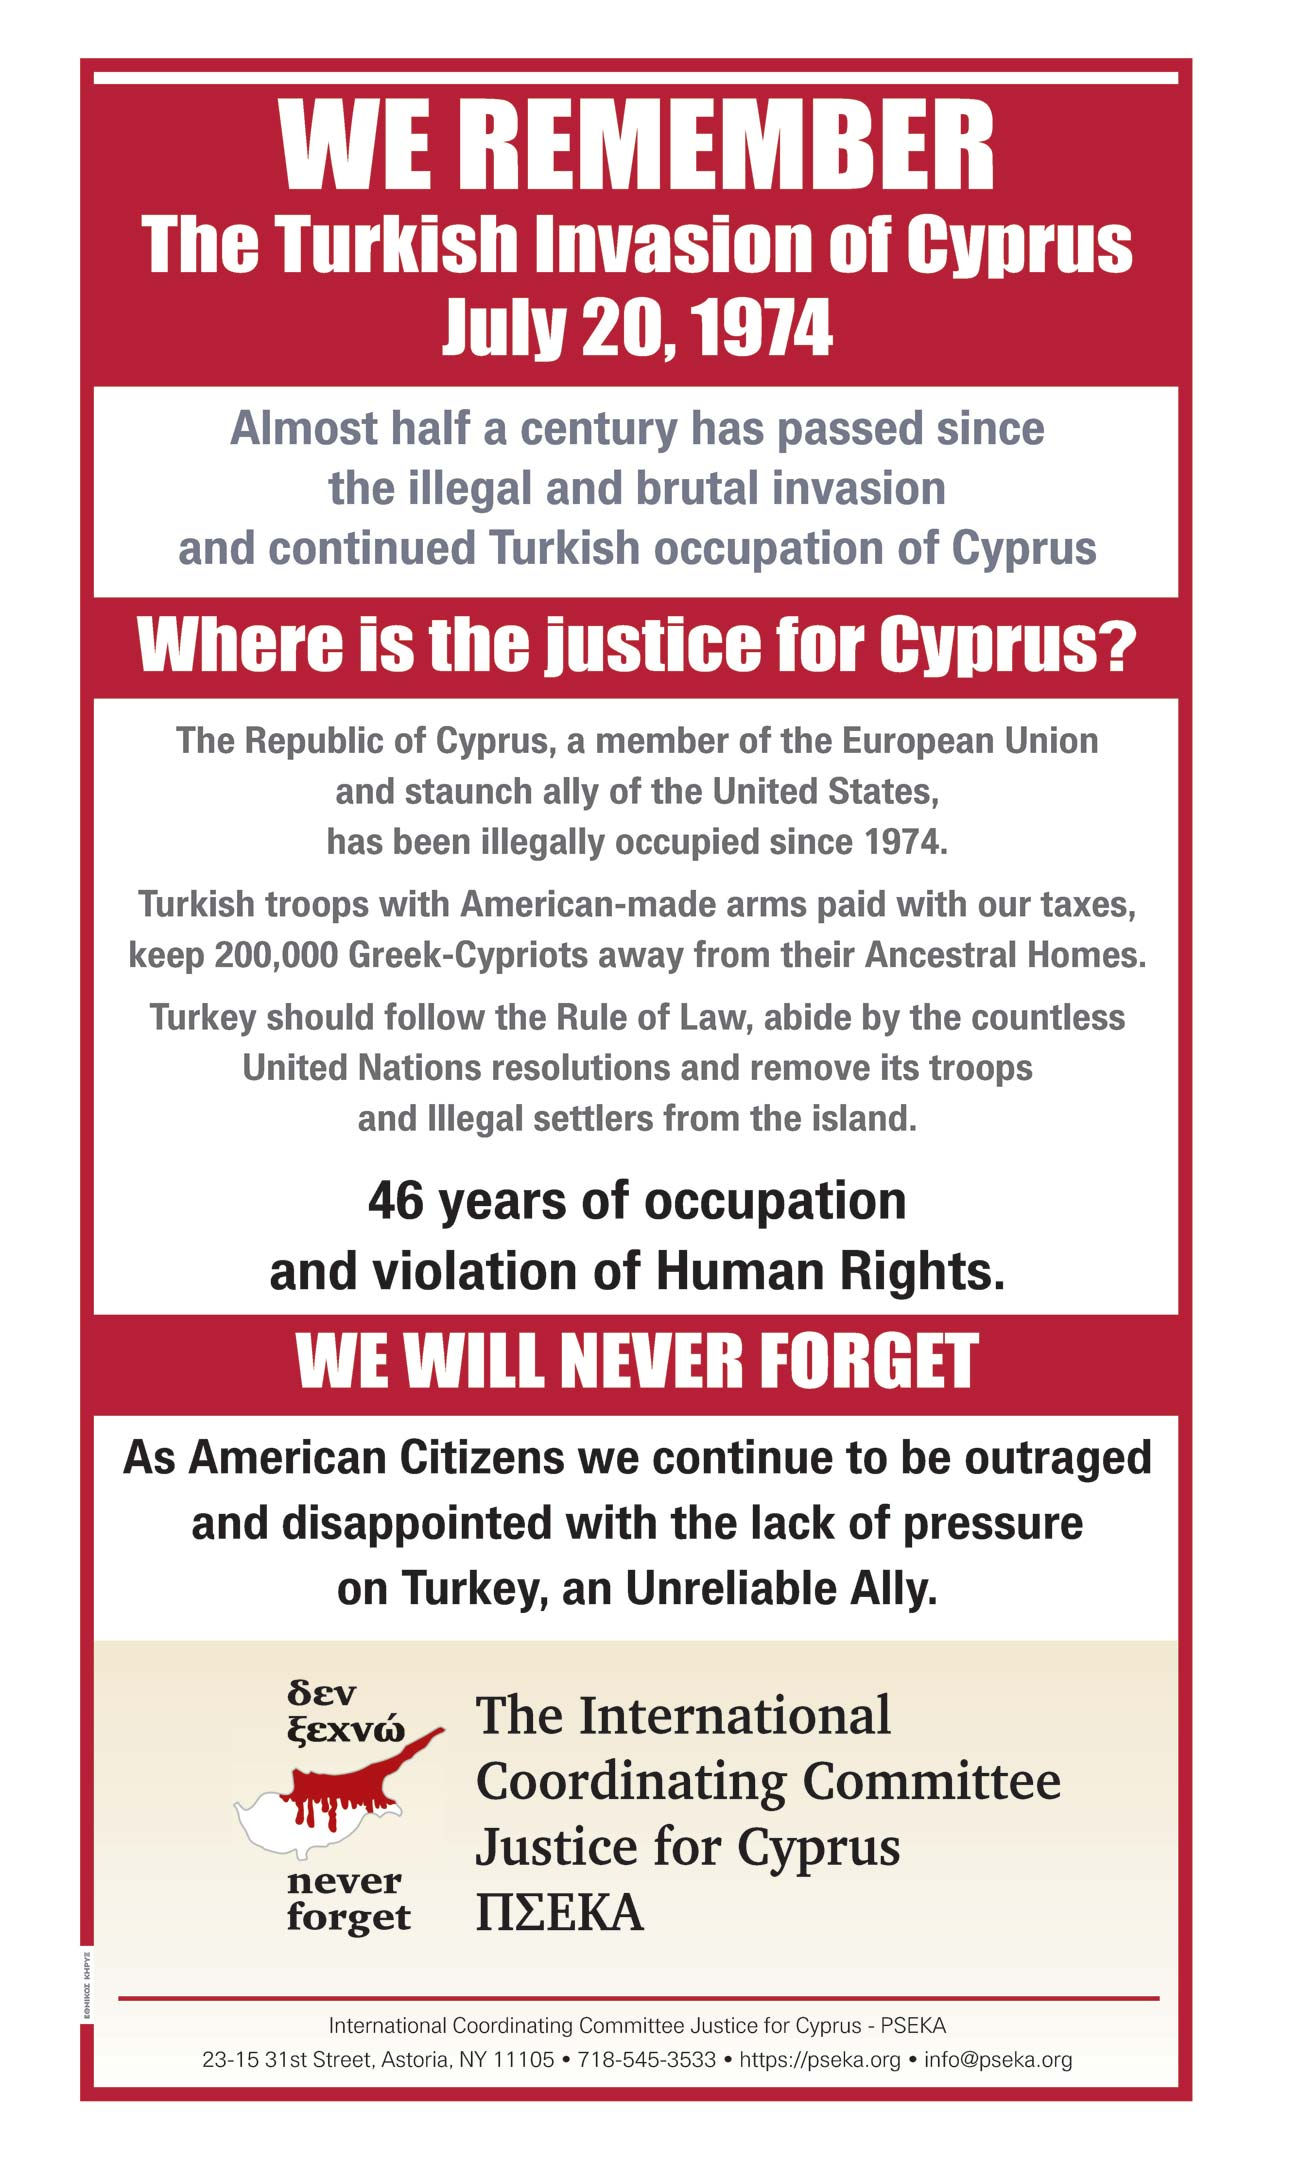 Where is the Justice for Cyprus?